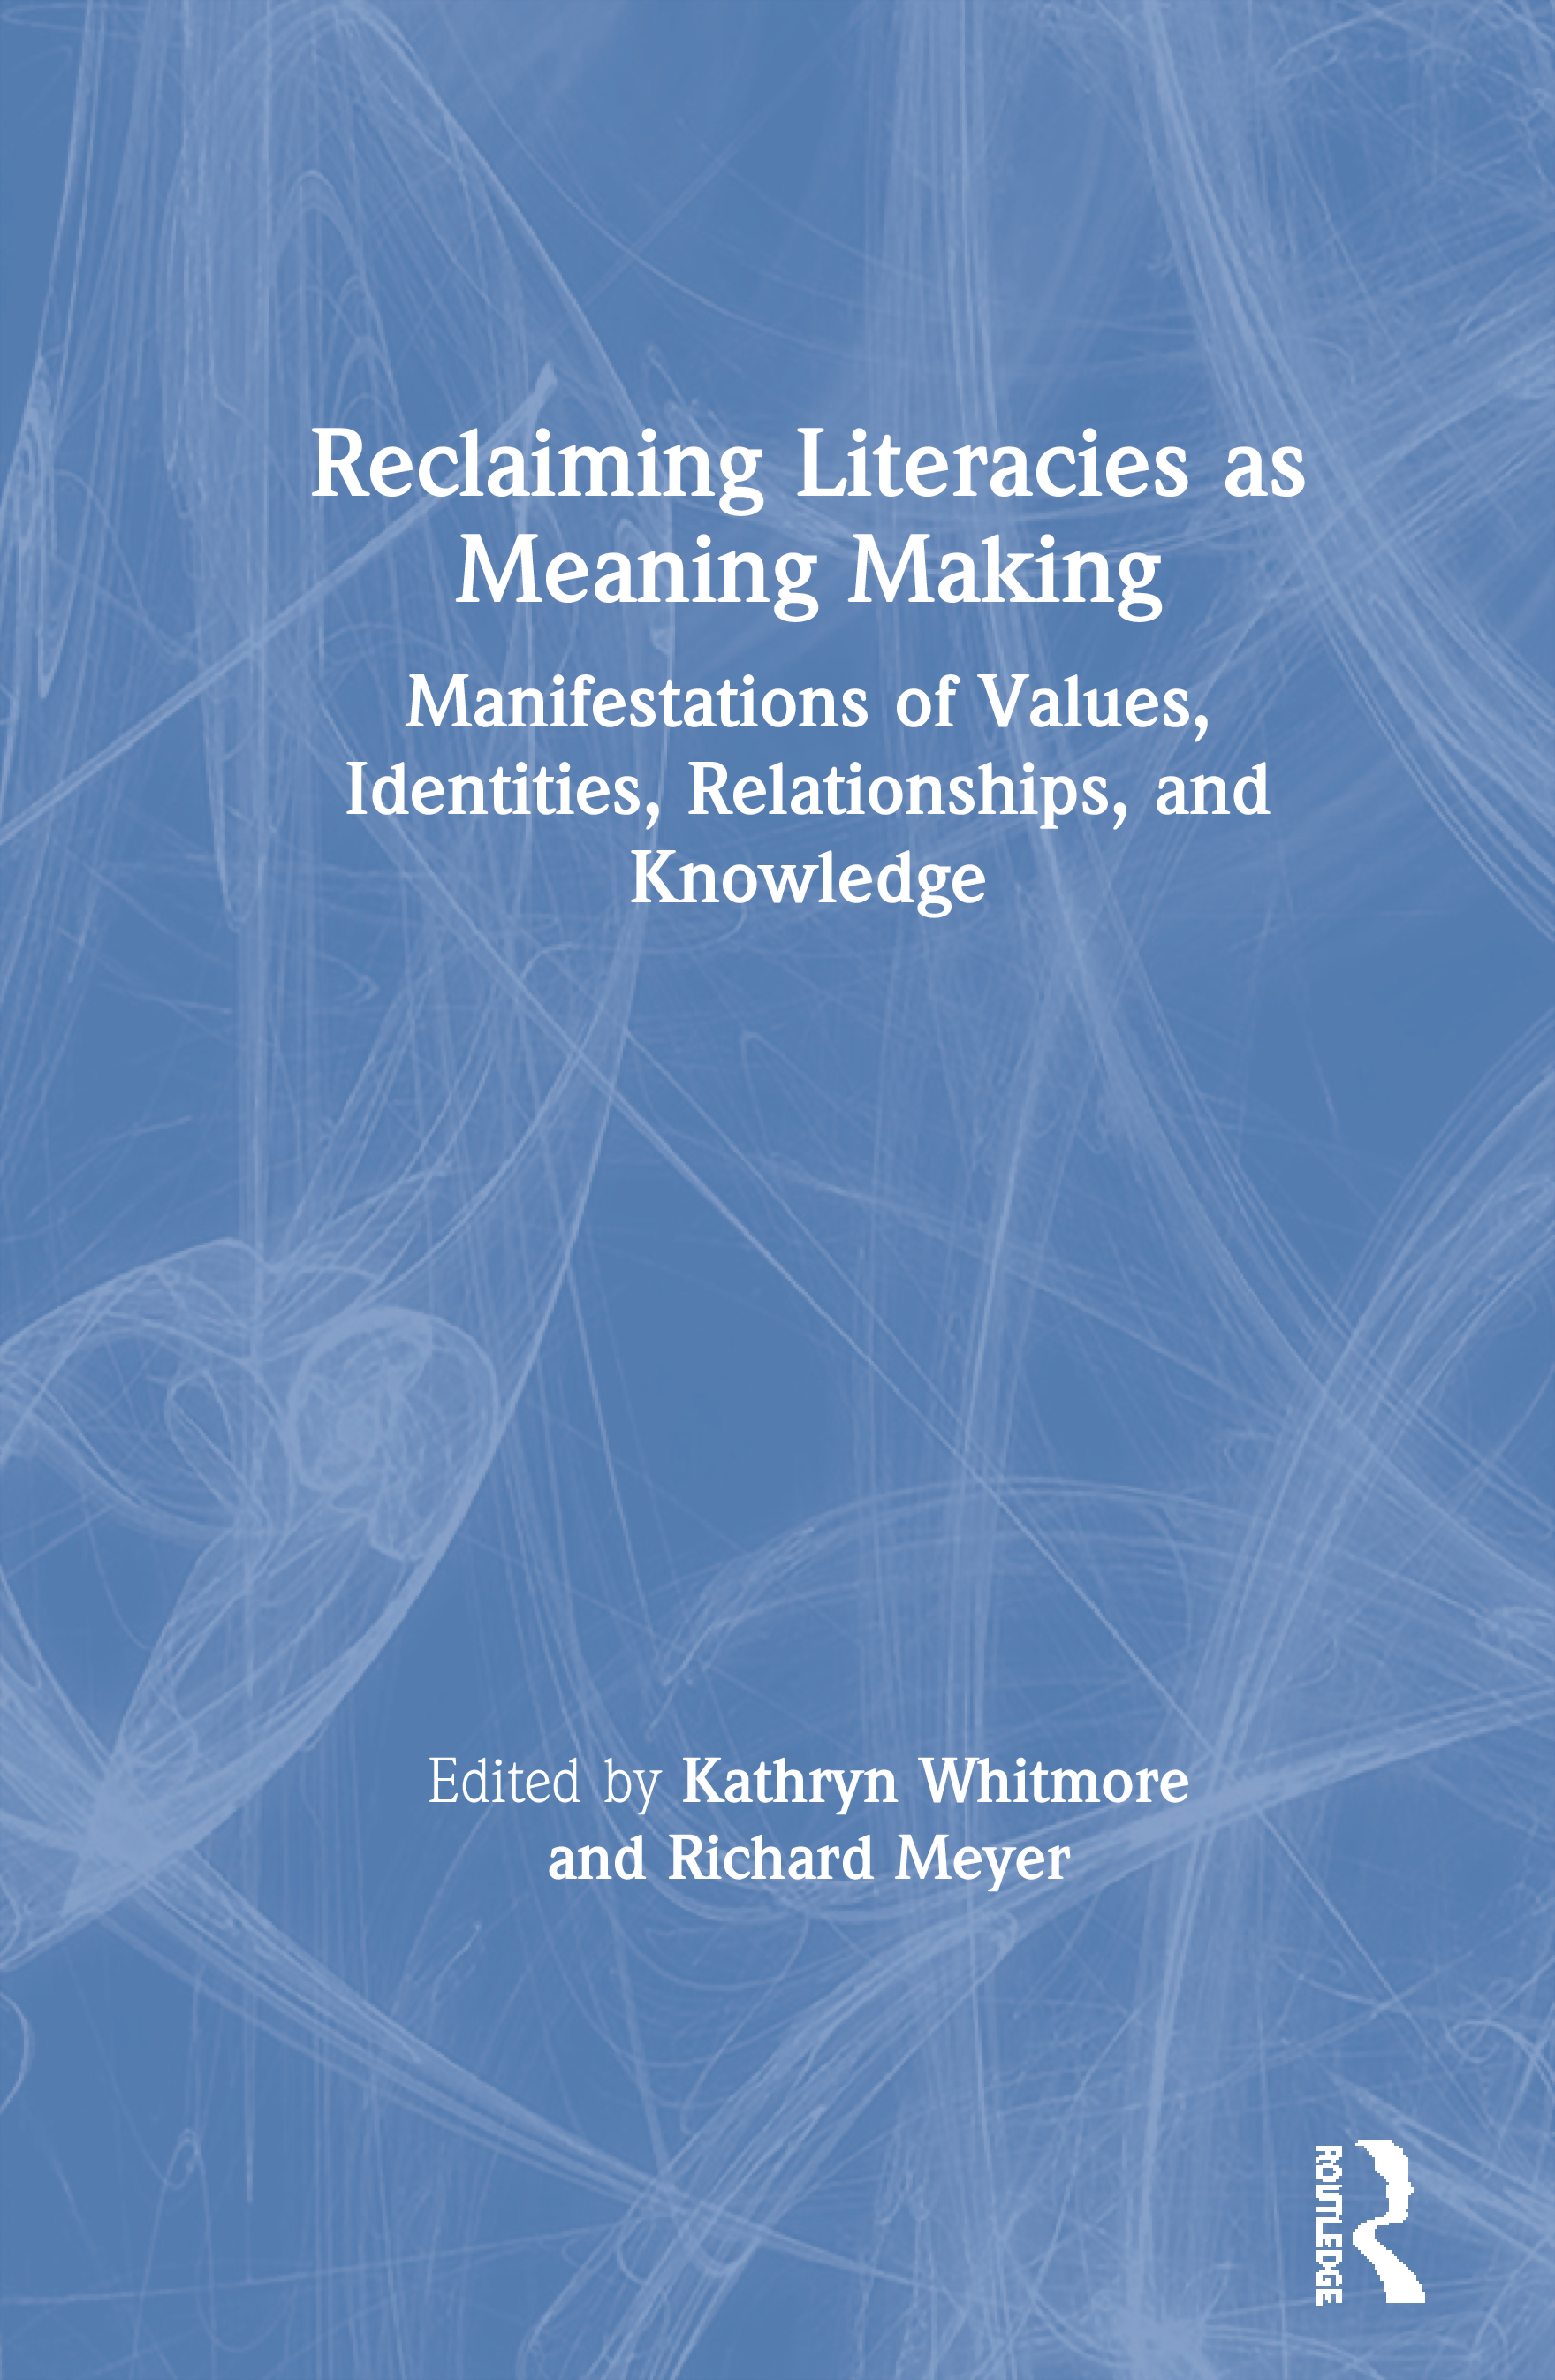 Reclaiming Literacies as Meaning Making: Manifestations of Values, Identities, Relationships, and Knowledge, 1st Edition (Paperback) book cover